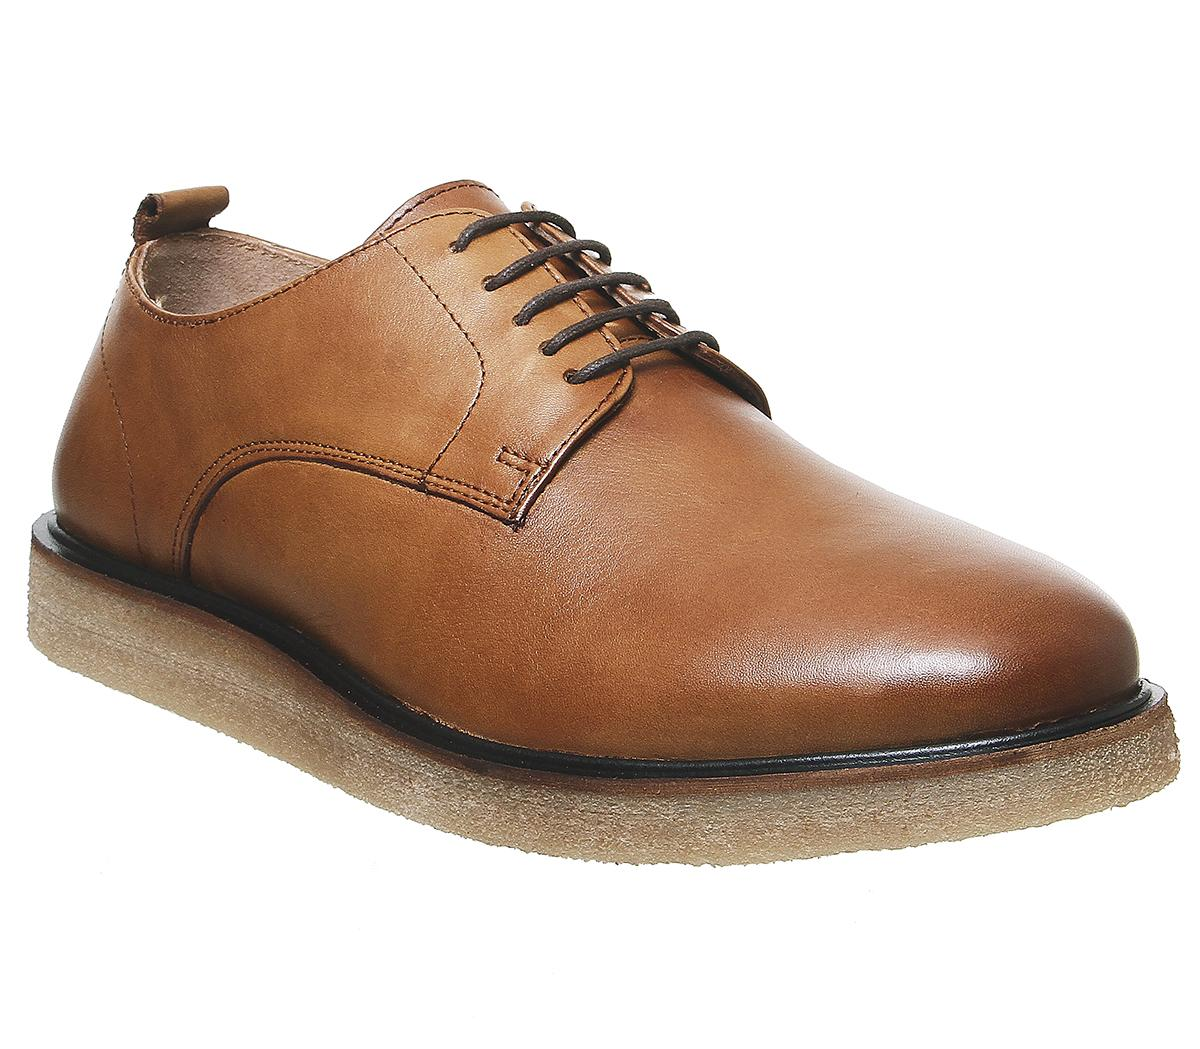 Cade Derby Shoes